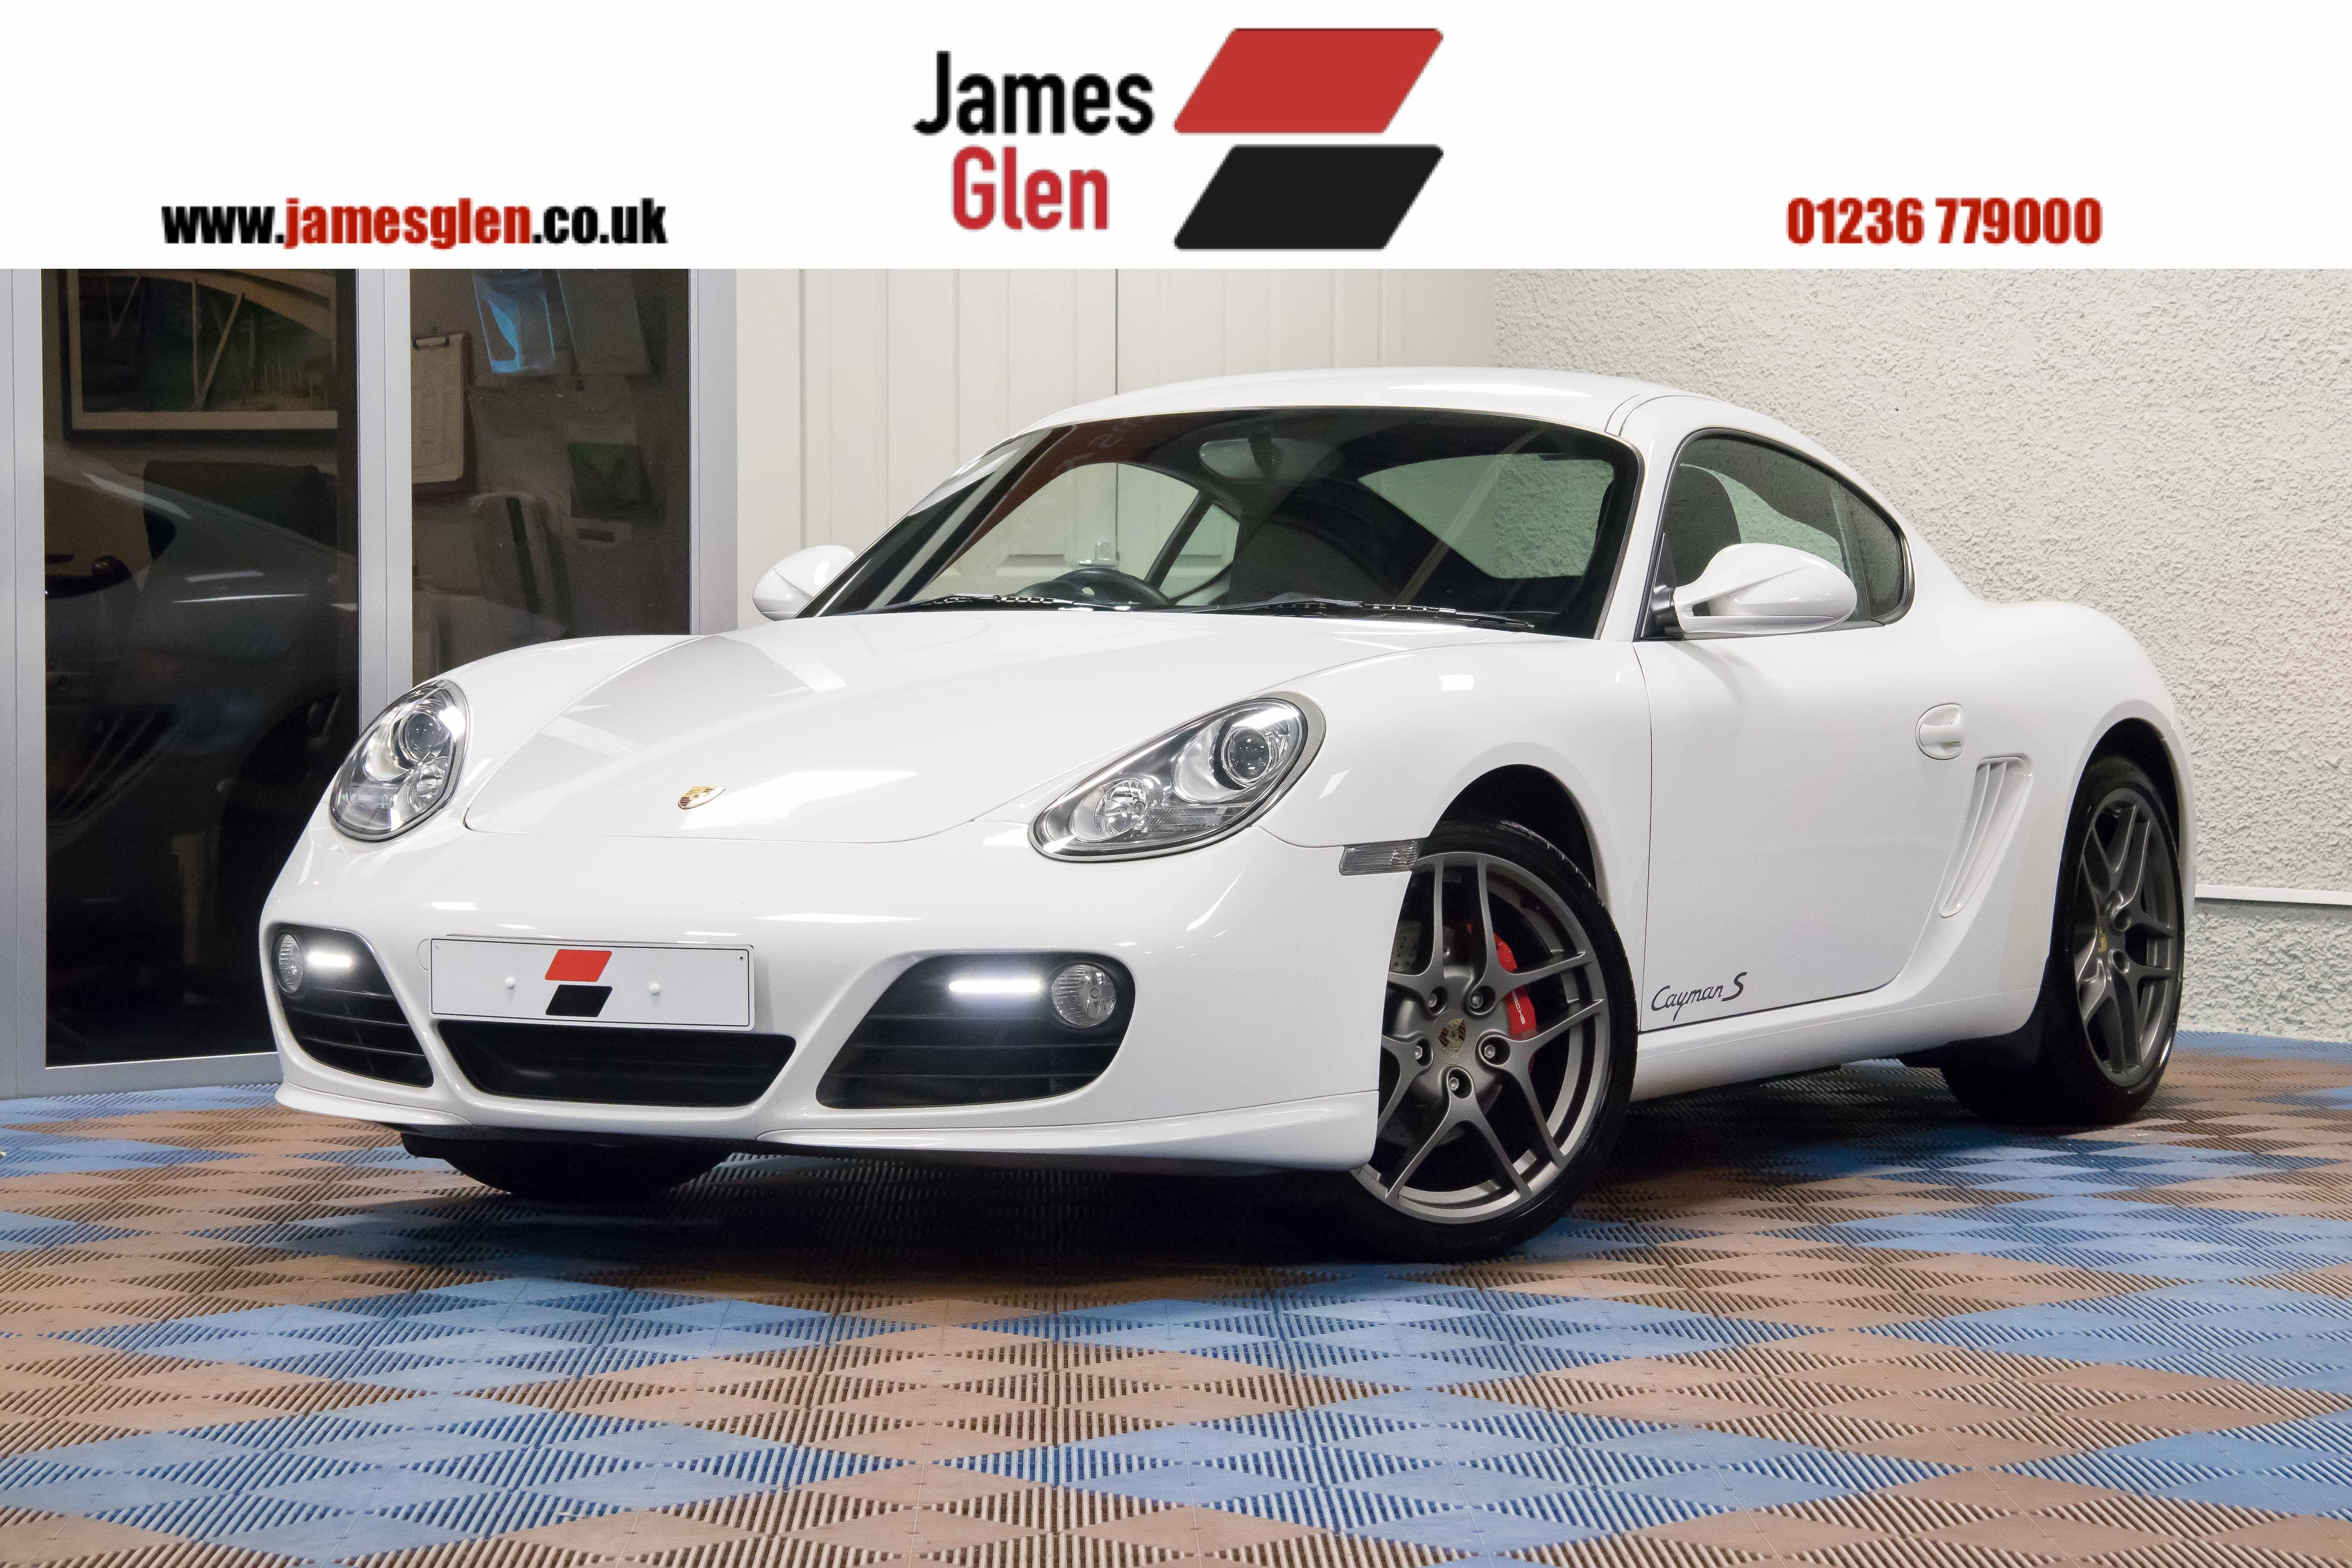 2010 Porsche Cayman 3 4s Manual 57000 Miles Cars And Motorcycles